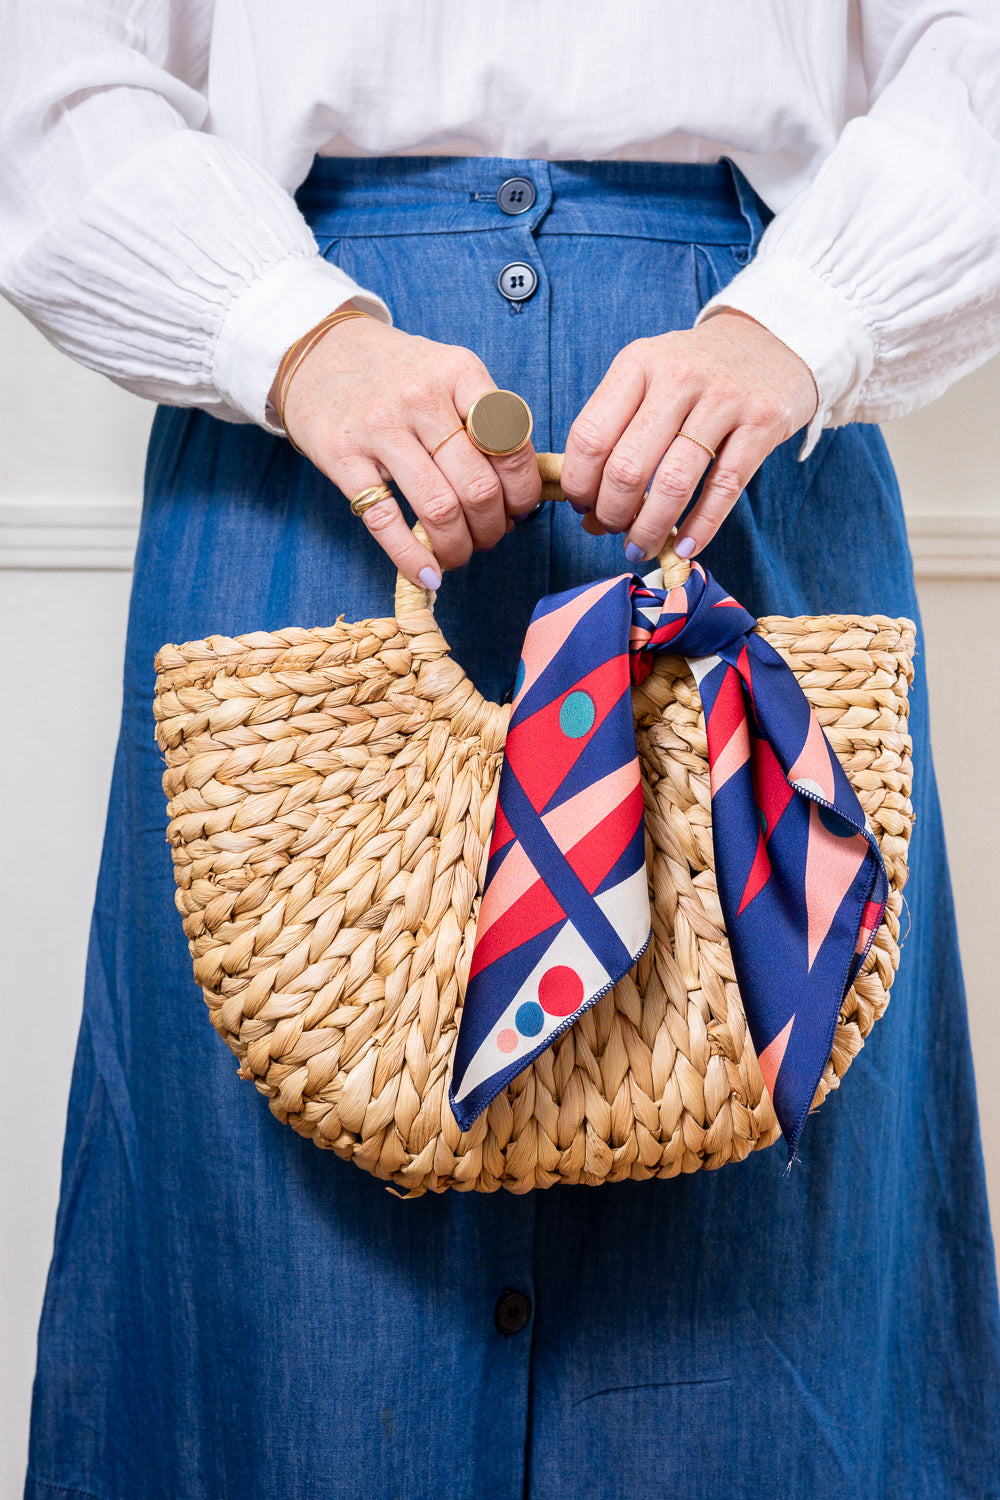 natural raffia straw rattan tote hand bag with red and blue scarf held in hand Janna Conner